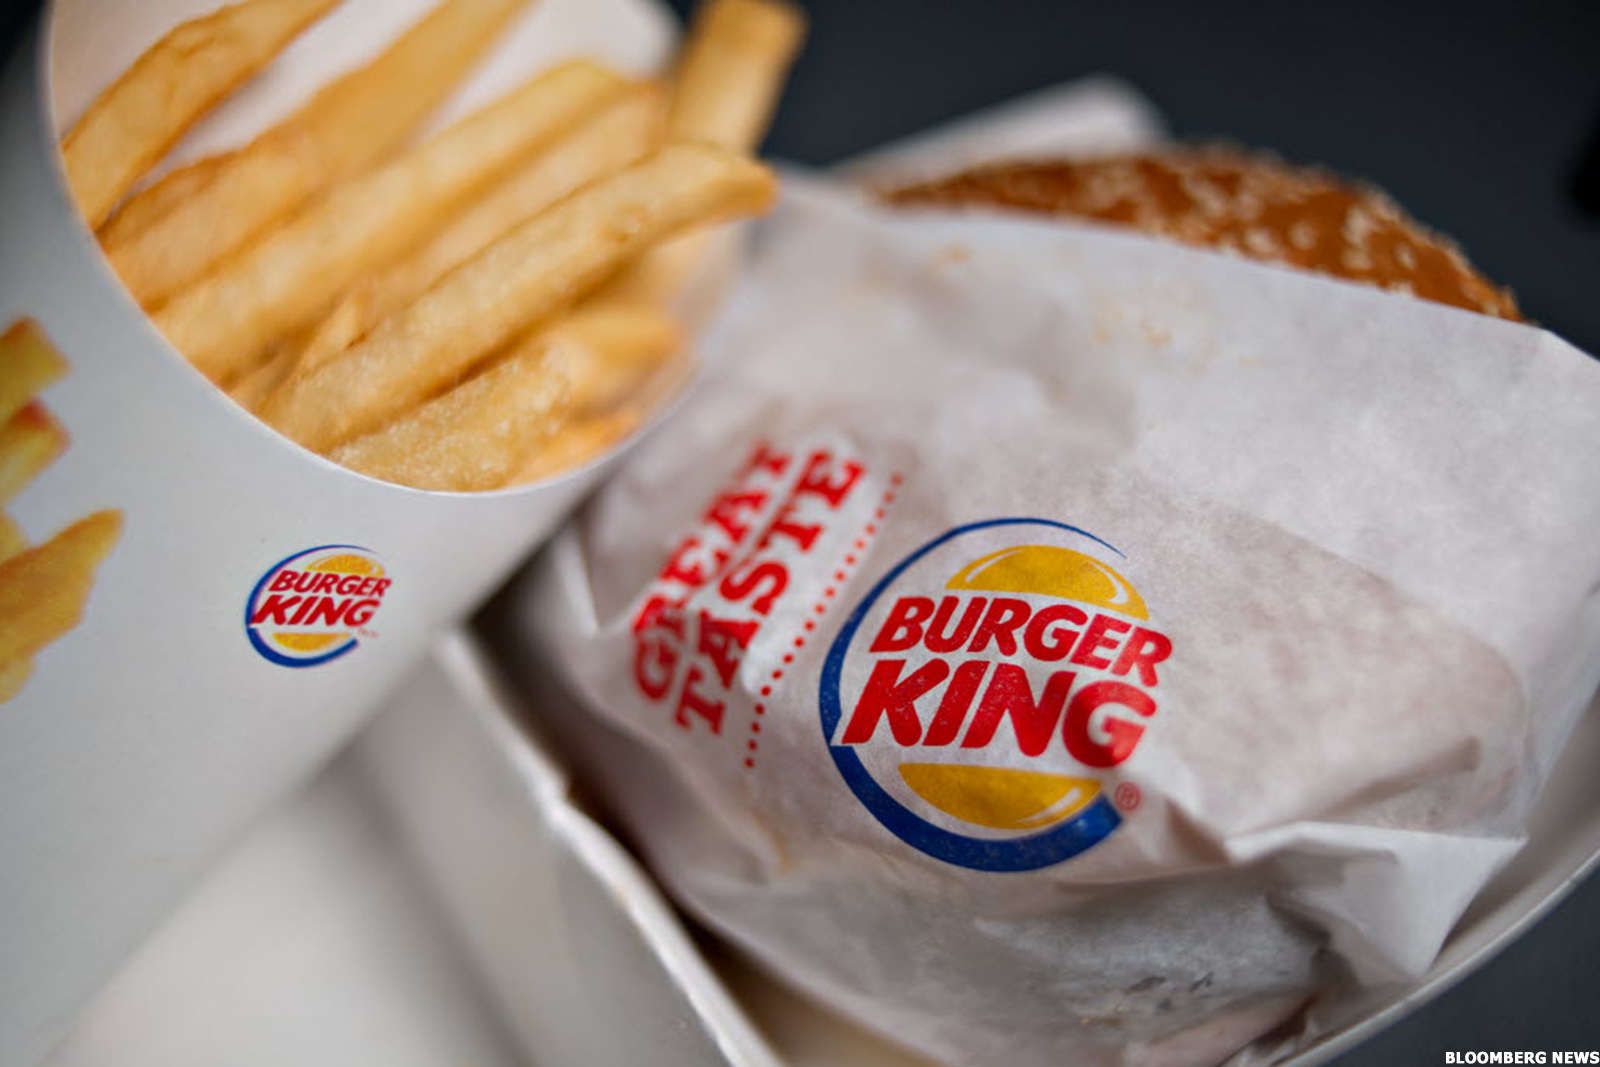 The new Burger King menu is one of the most diverse in the market. Burger King is one of the largest fast food companies in the country. On the way to getting there, Burger King has expanded their menu to have a wide range of selections. They've moved away from just standard whoppers, and now have salads, smoothies, and even coffee on the menu.